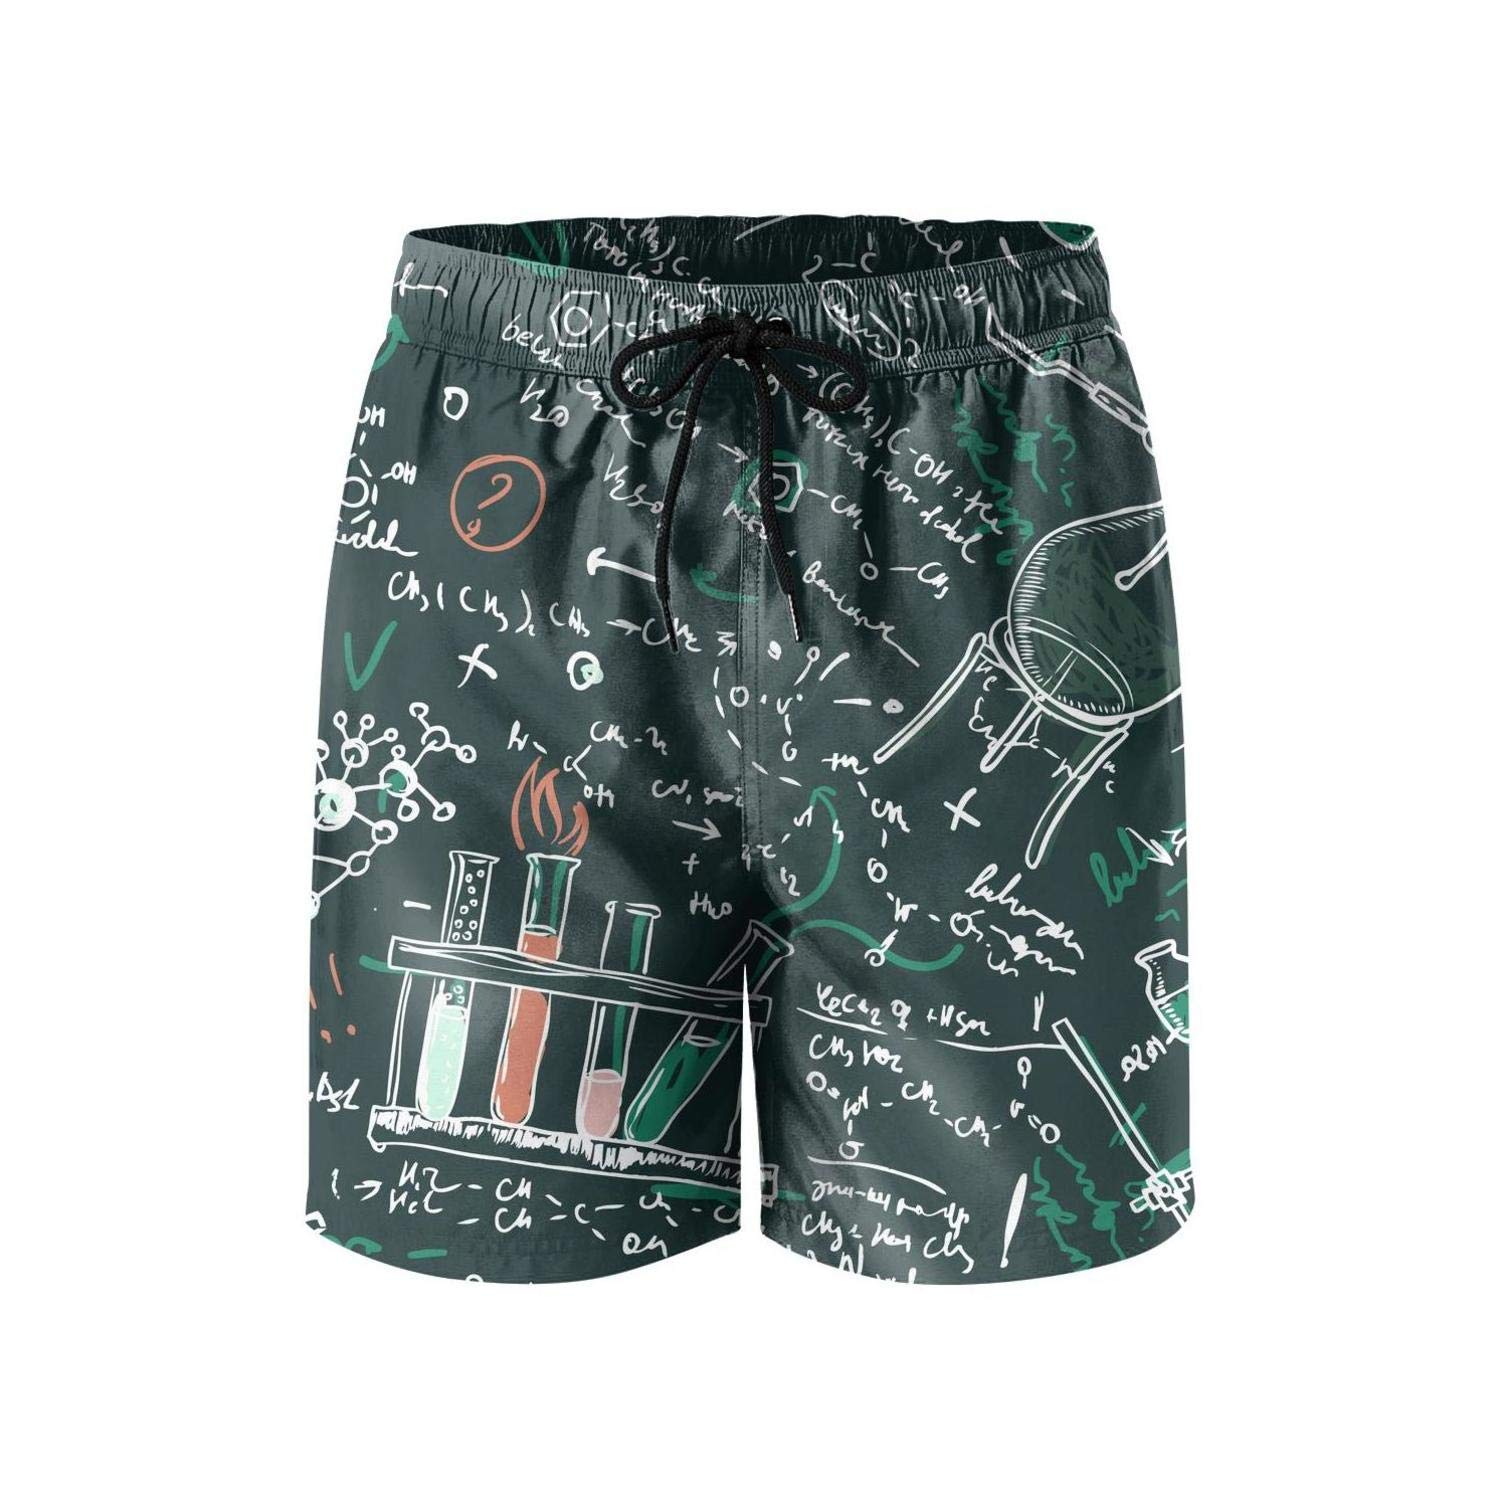 Military Men Board Shorts high Waisted Elastic DSFASDXFX Handwritten-Math-Equations-Scientific